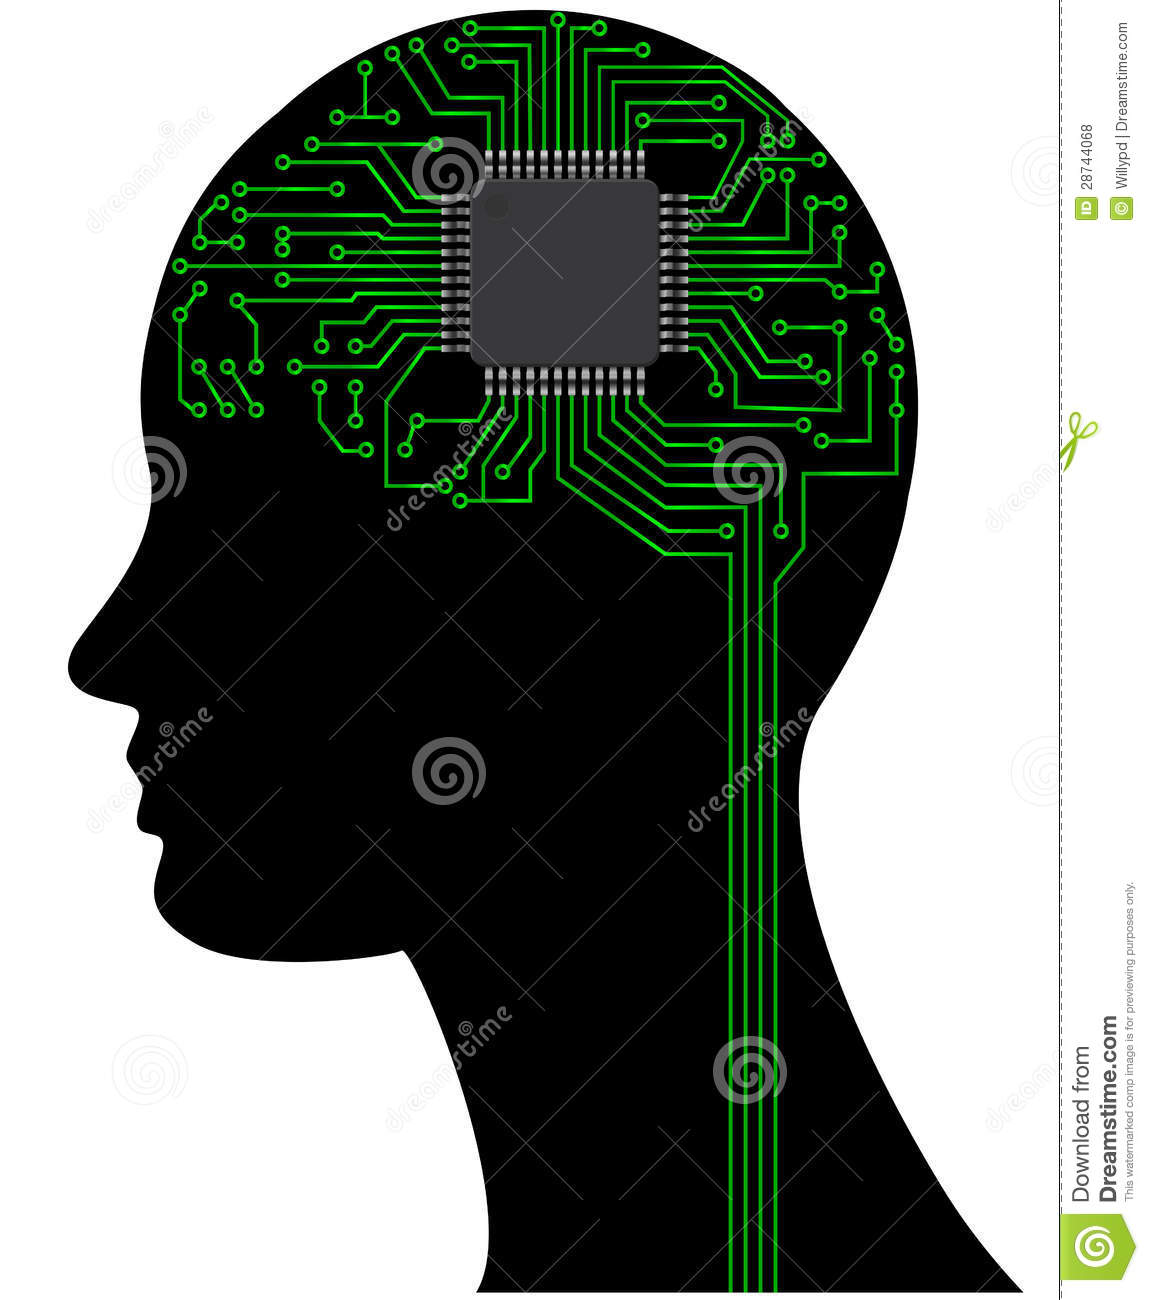 Microchip Head Royalty Free Stock Photos Image 28744068